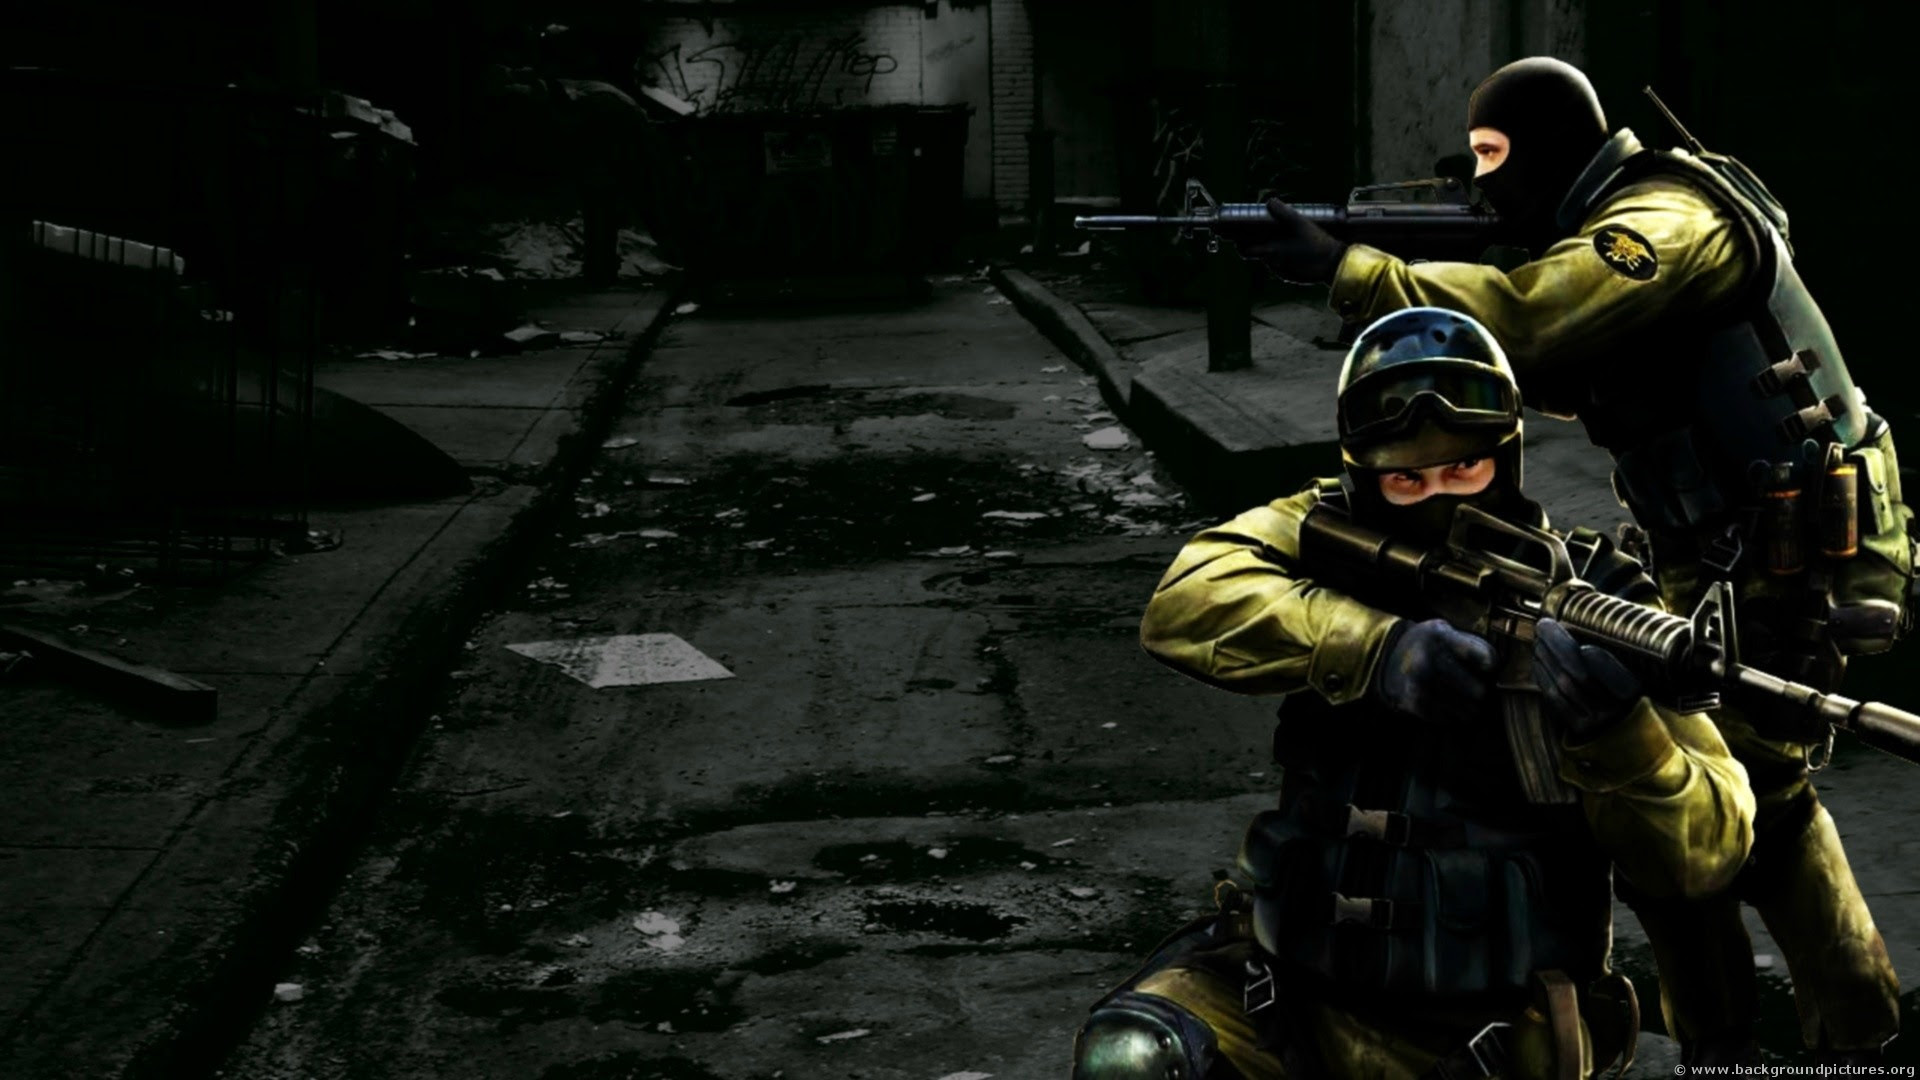 While Playing Counter Strike 1.6, HD Wallpaper [1920x1080]